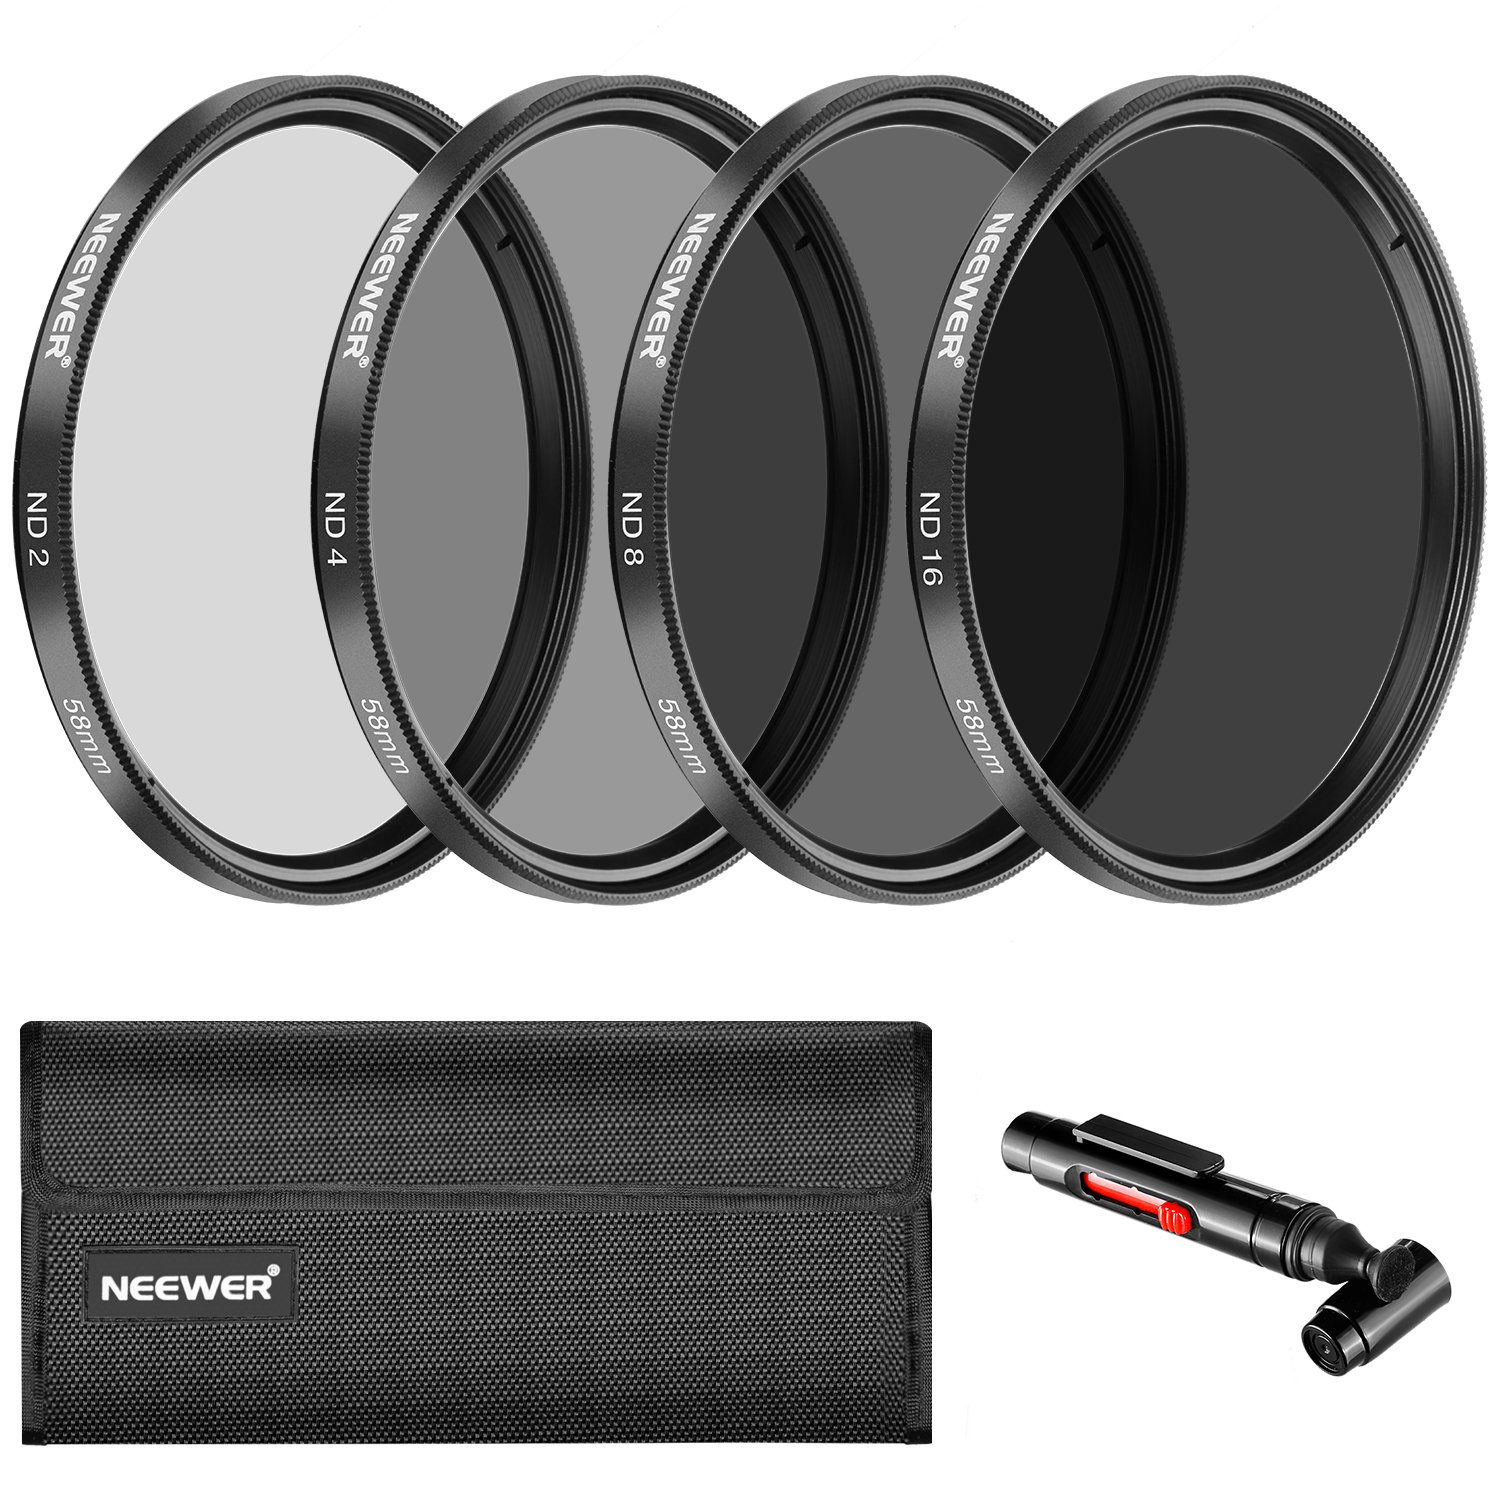 Neewer 58MM Neutral Density ND2 ND4 ND8 ND16 Filter and Accessory Kit for Canon EOS Rebel T6i T6 T5i T5 T4i T3i SL1 DSLR Camera, Lens Pen, Filter PouchIncluded by Neewer